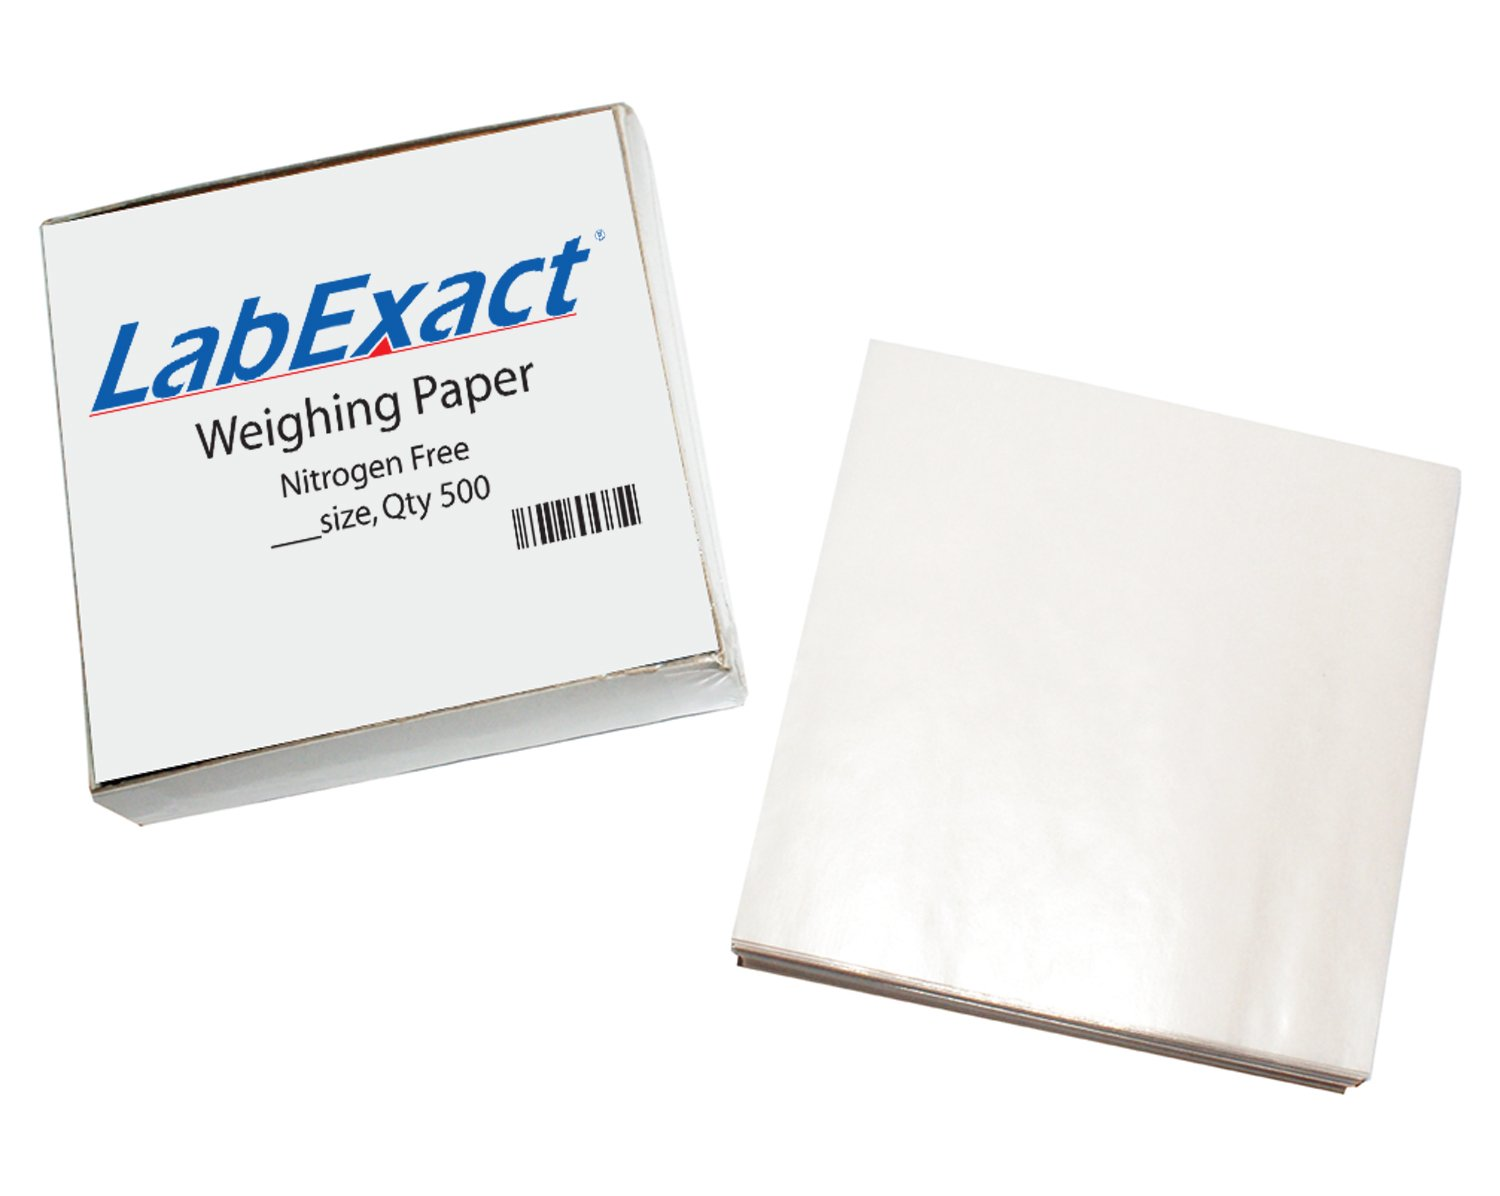 LabExact 1200160 W66 Cellulose Weighing Paper Sheet, Nitrogen Free, Non-Absorbing, High-Gloss, 6 x 6 Inches (Pack of 500)